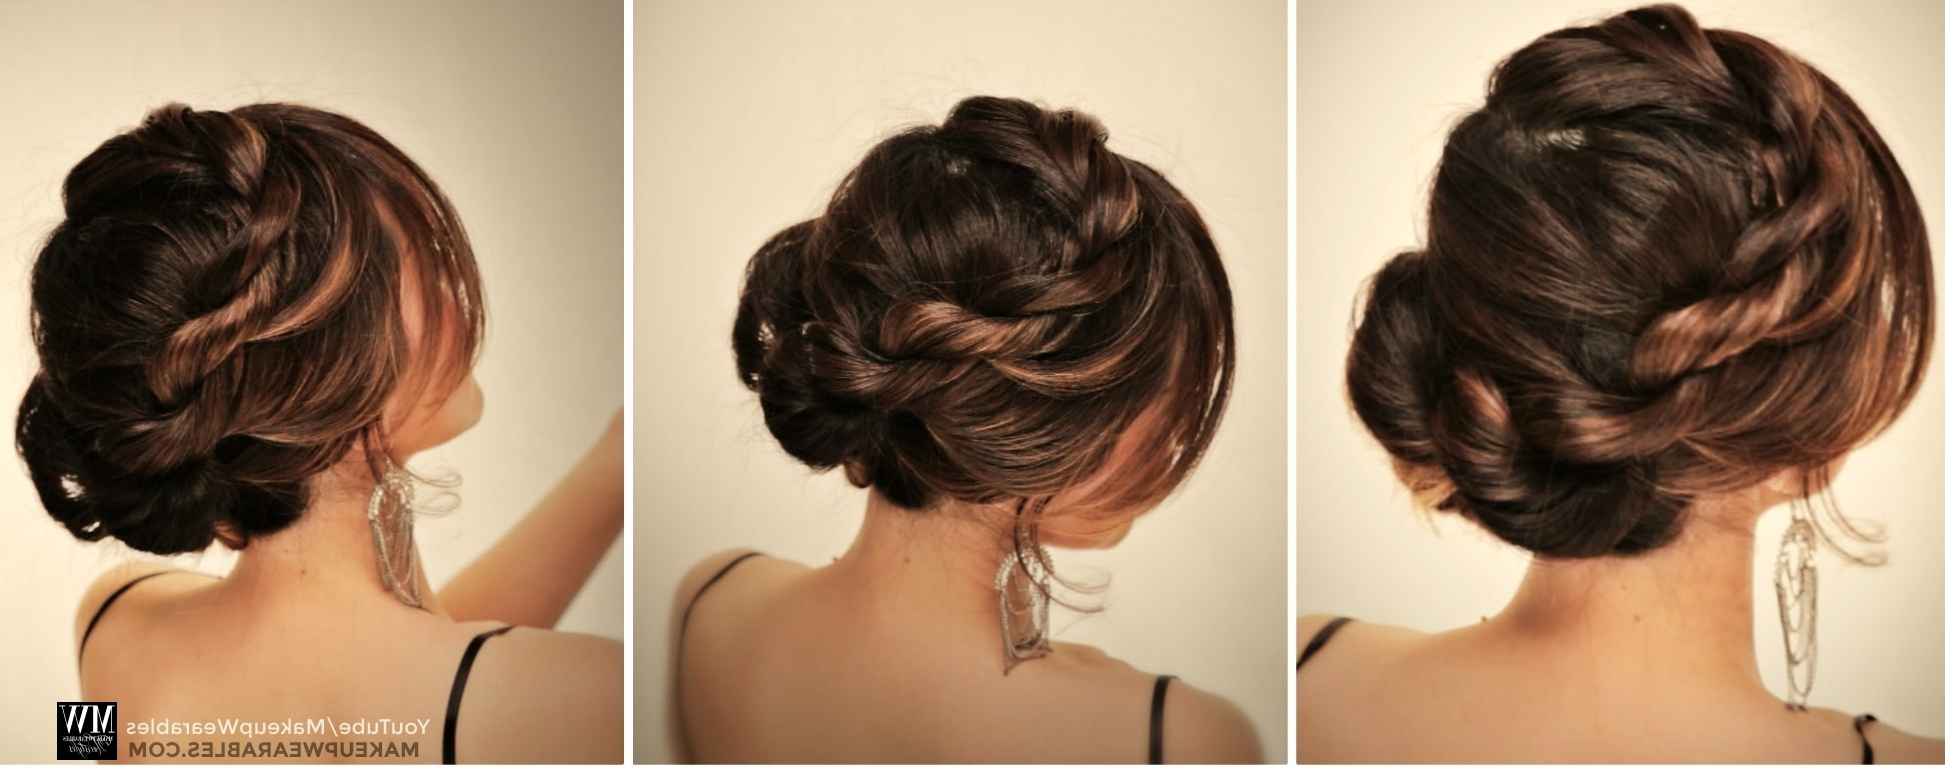 How To: 5 Amazingly Cute + Easy Hairstyles With A Simple Twist Inside Quick Messy Bun Updo Hairstyles (View 9 of 15)